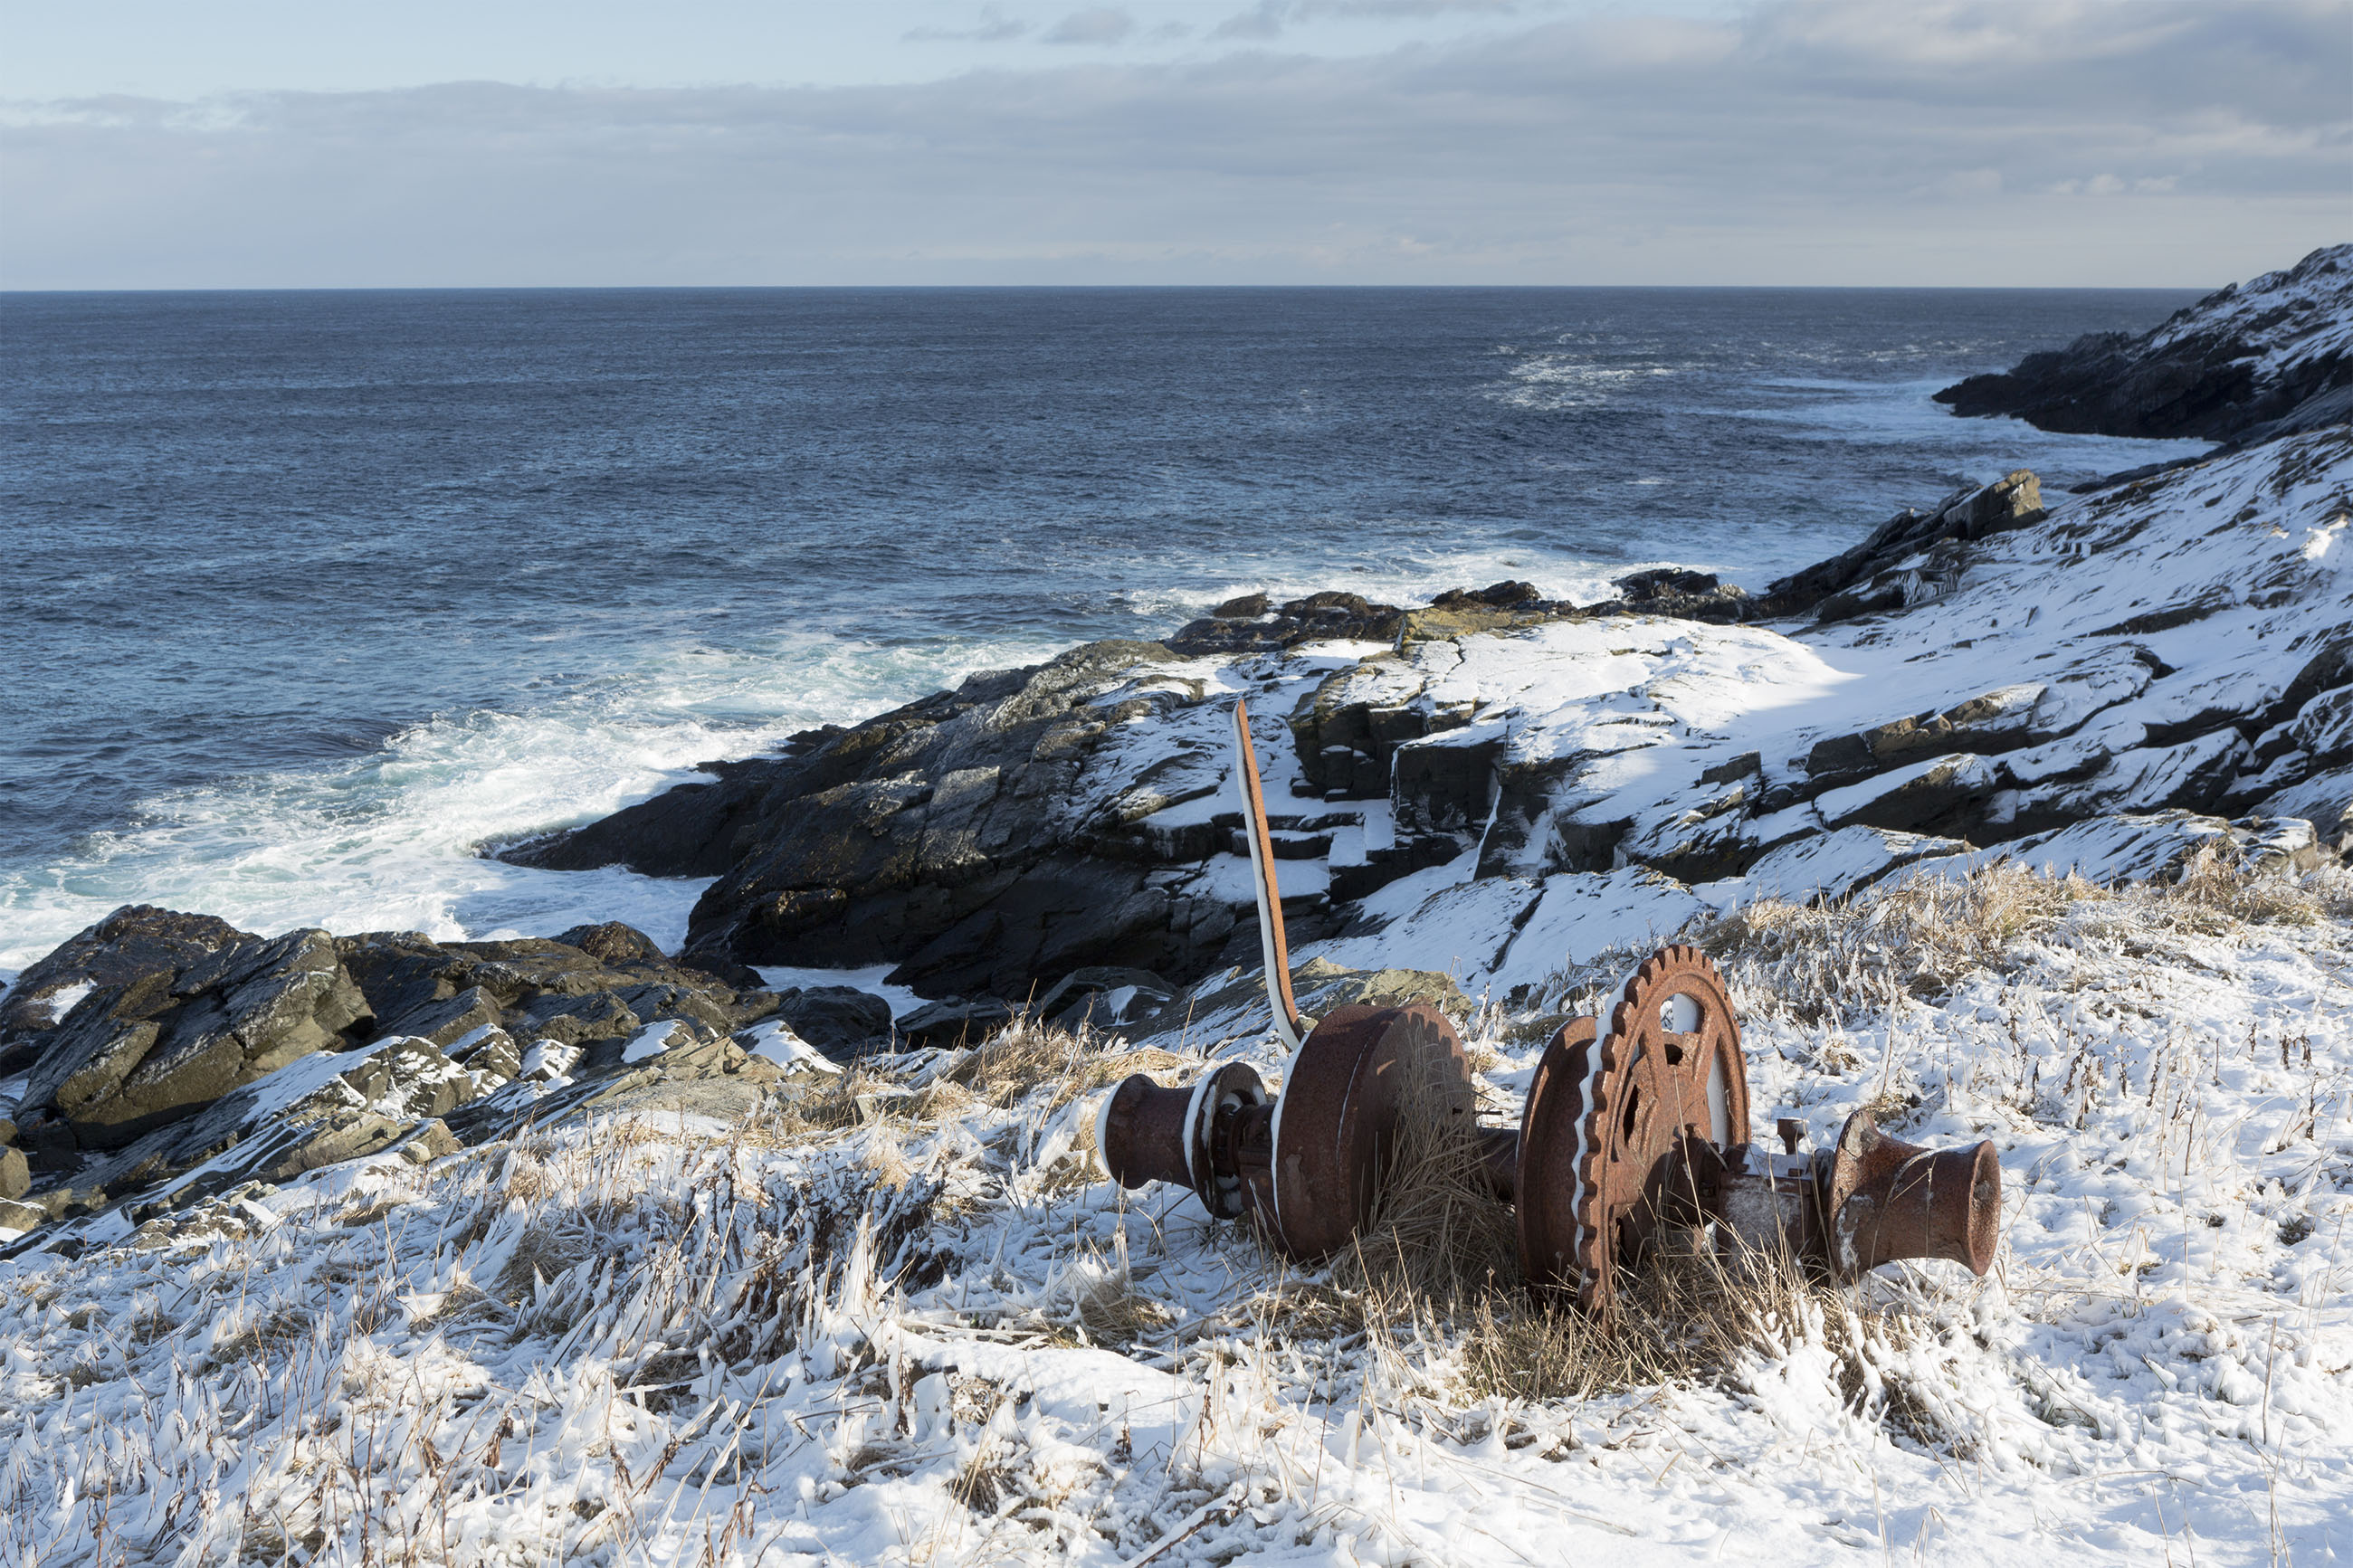 Old gears and winter seascape photo